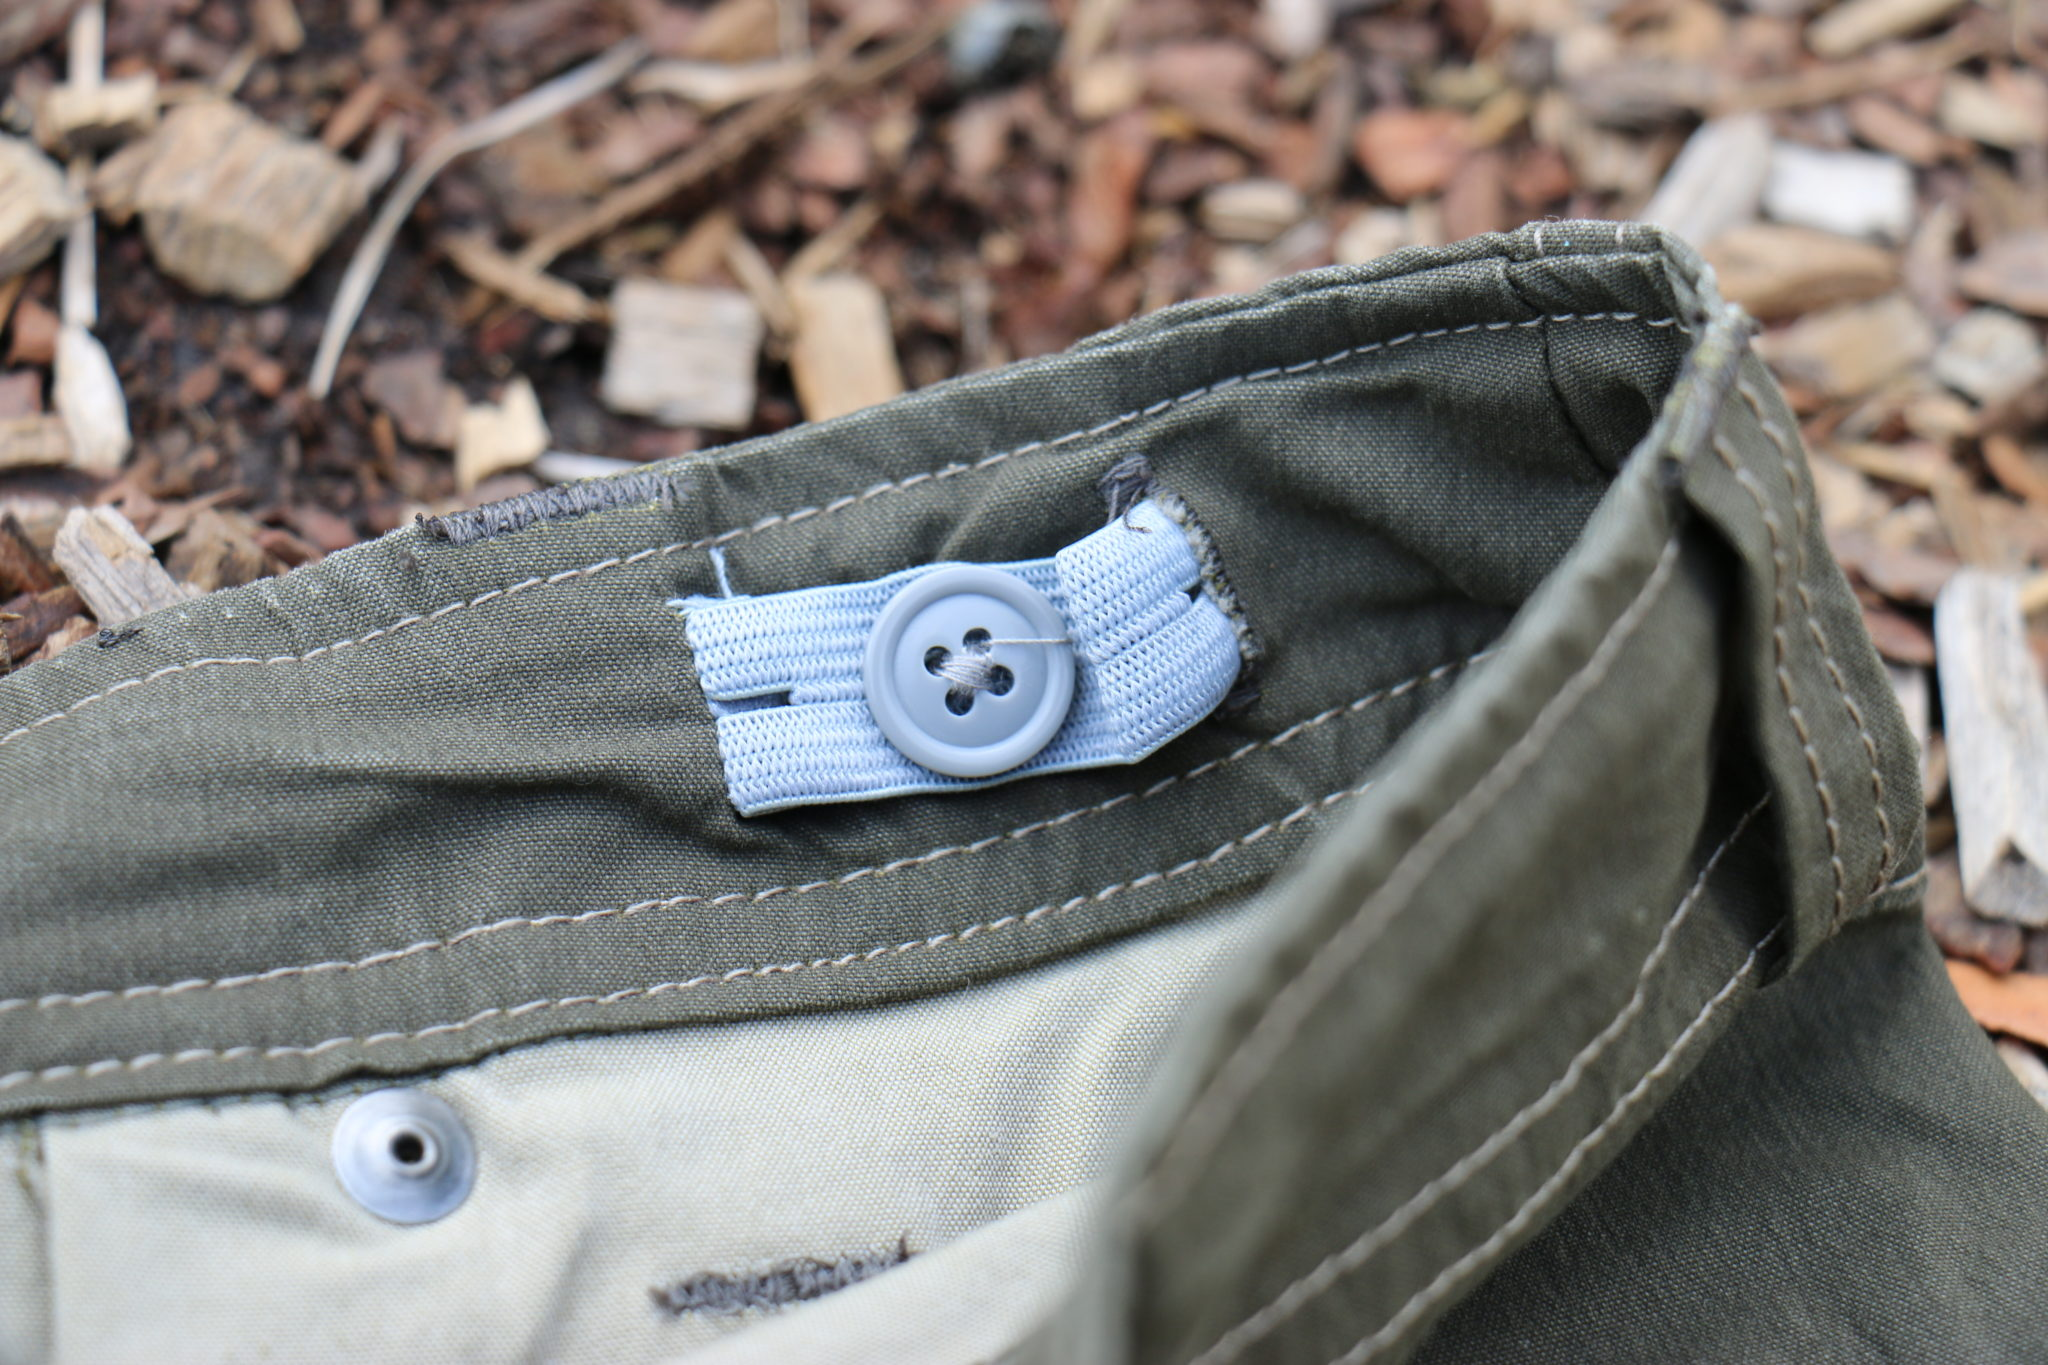 Adjustable inner waistband